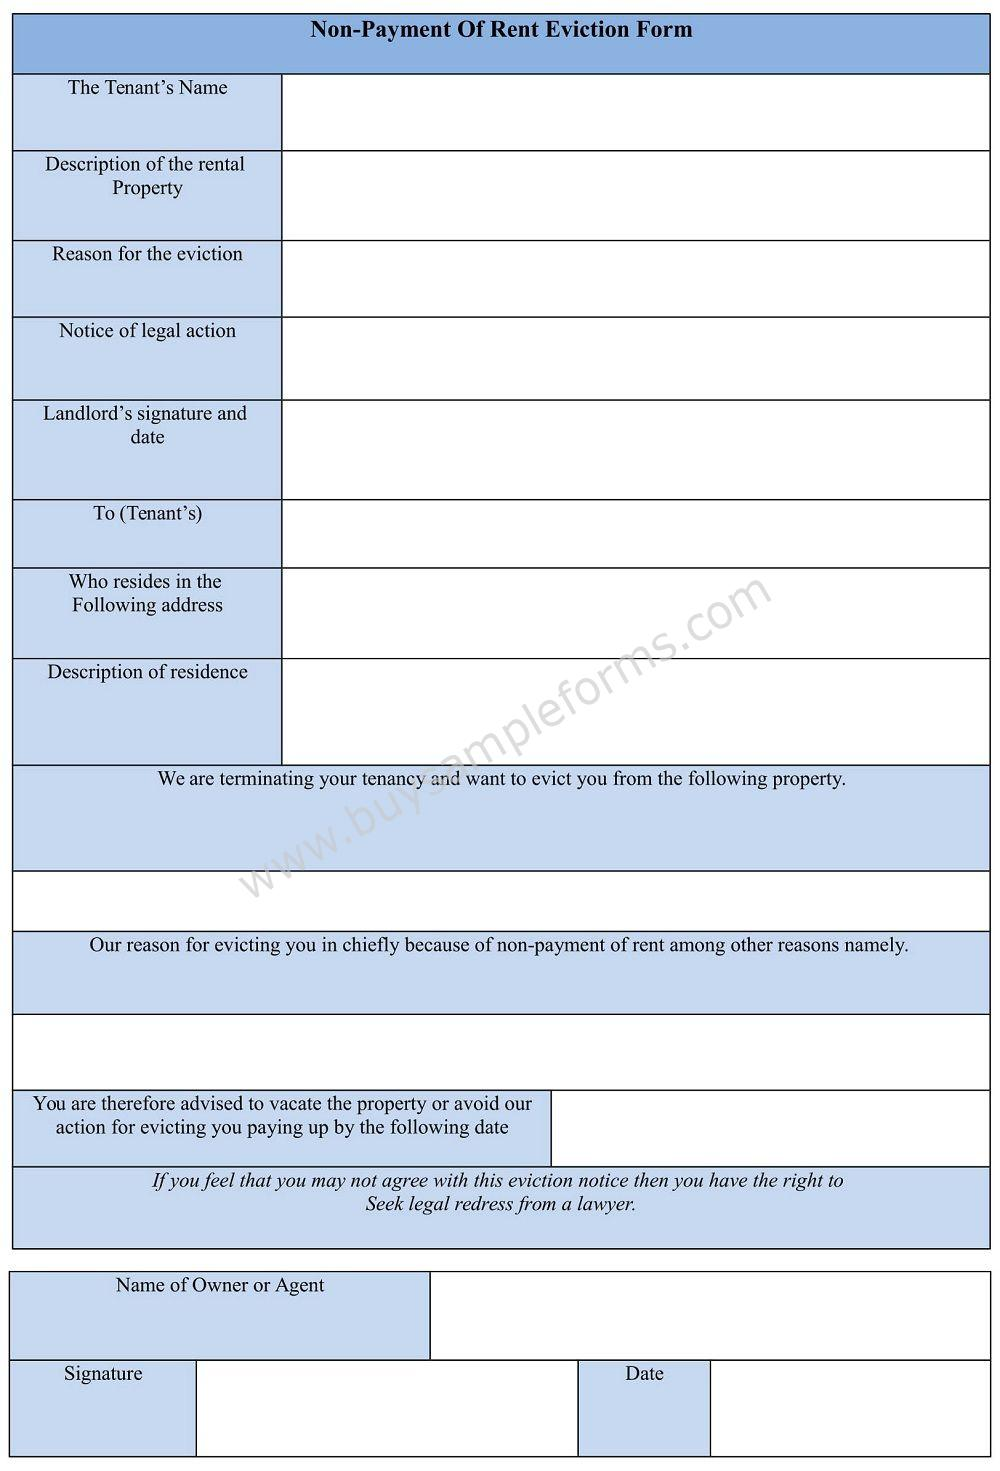 Non-Payment of Rent Eviction Form template